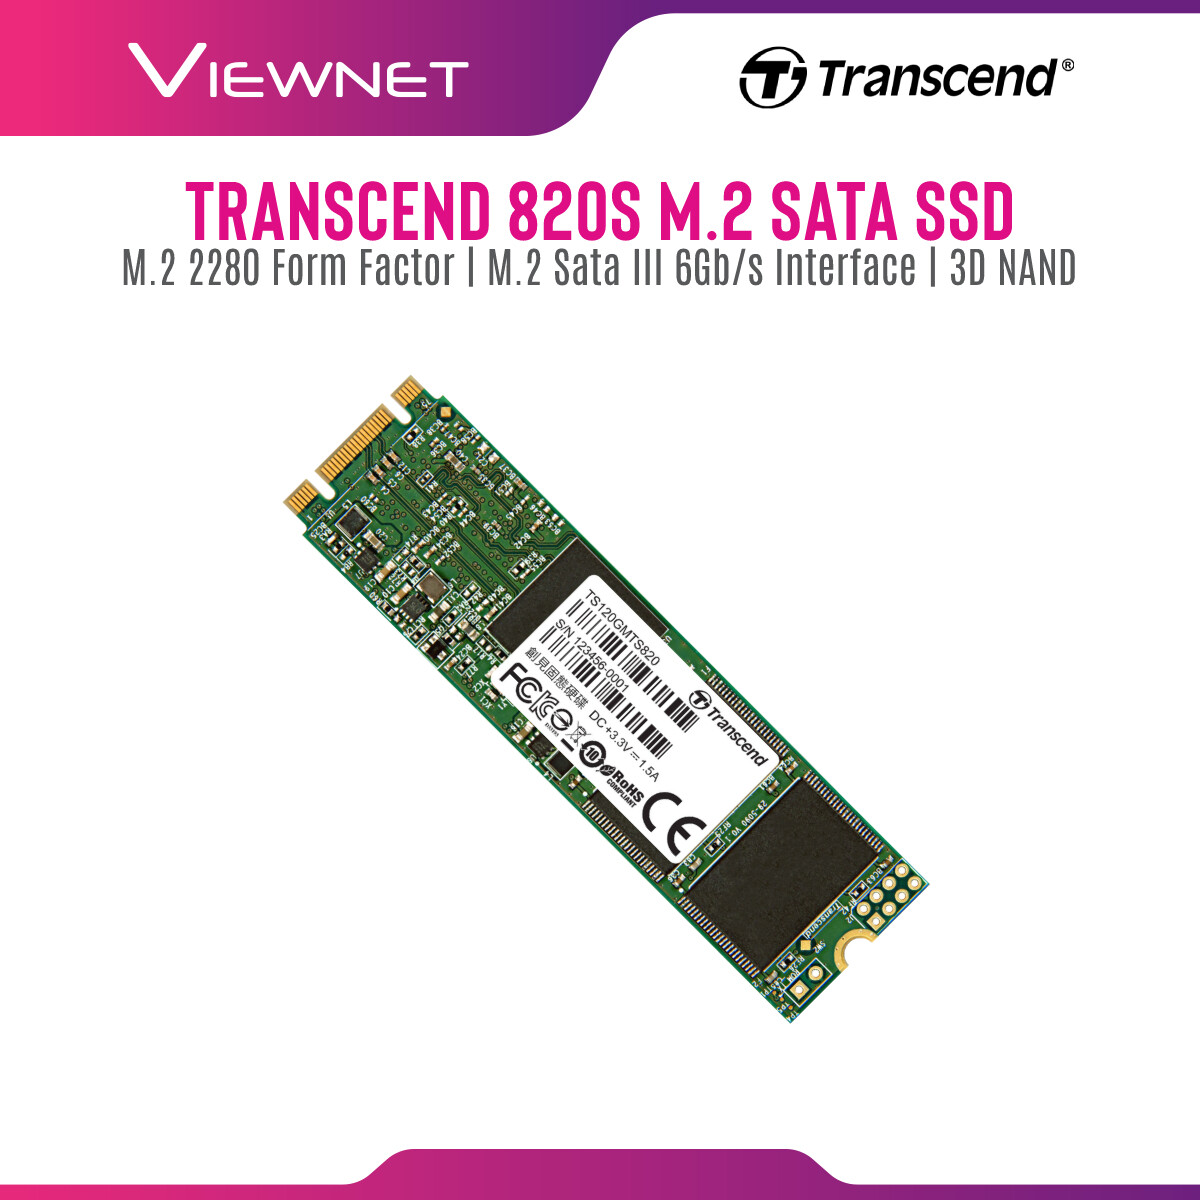 Transcend 820S (120GB/240GB/480GB/960GB) SATA III M.2 SSD best suited for Ultrabooks and thin, light notebooks